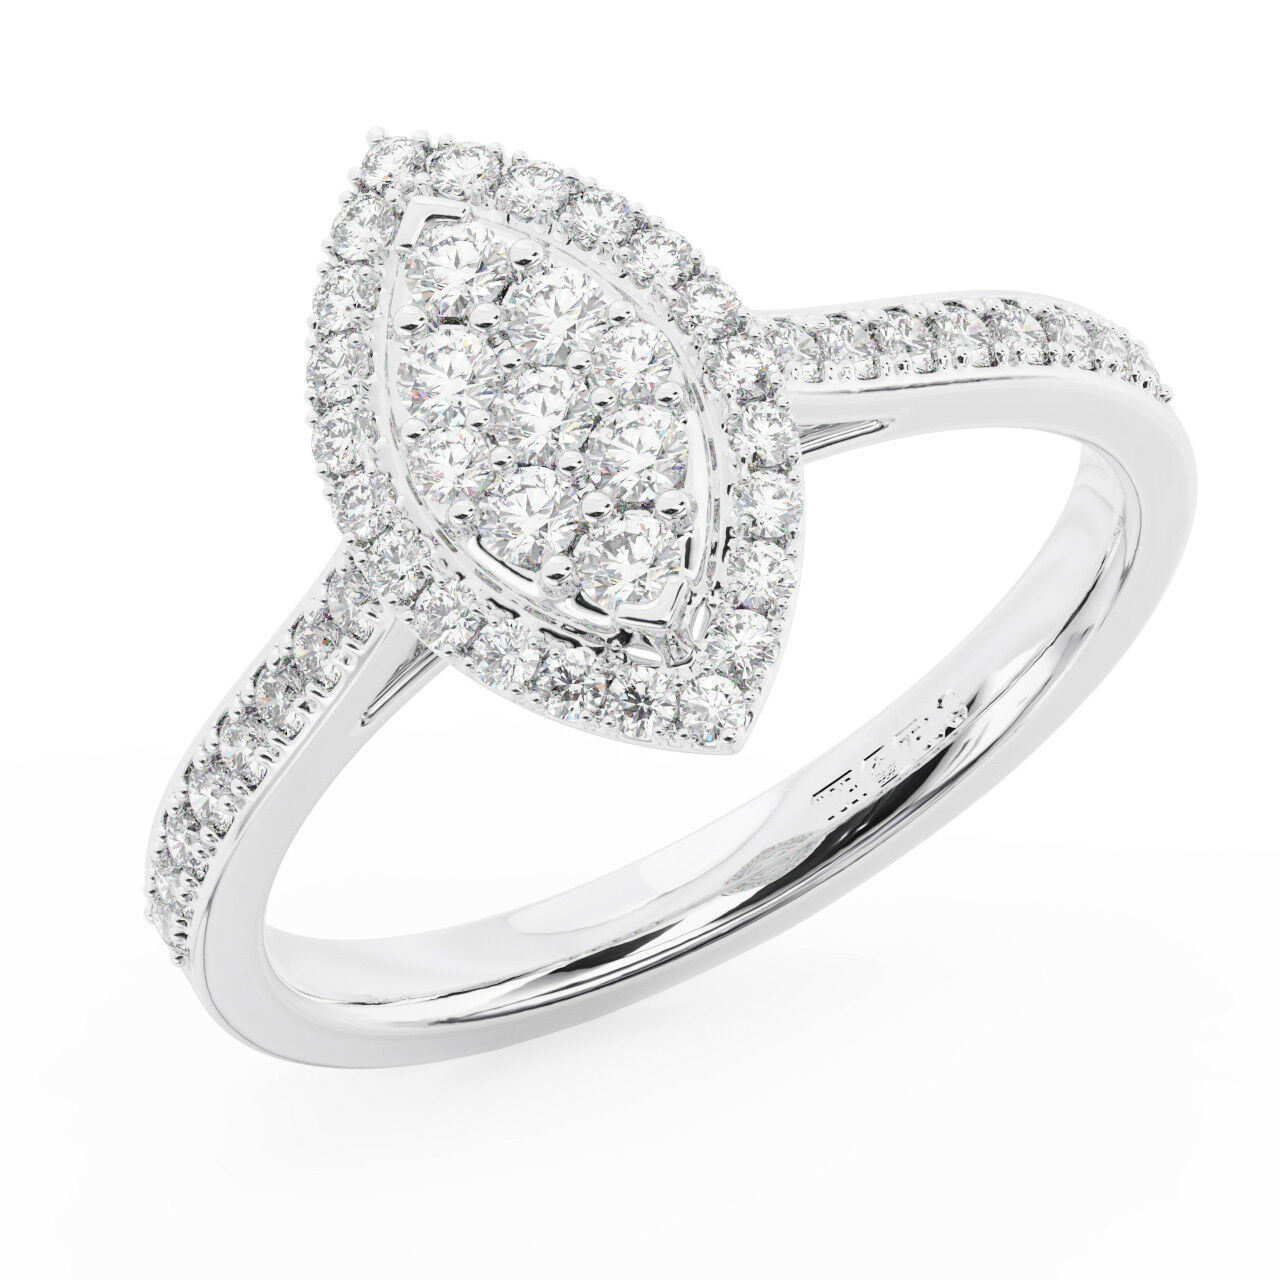 0.50CT Round Diamonds Marquise Type Halo Engagement Ring in Metal in 9K gold